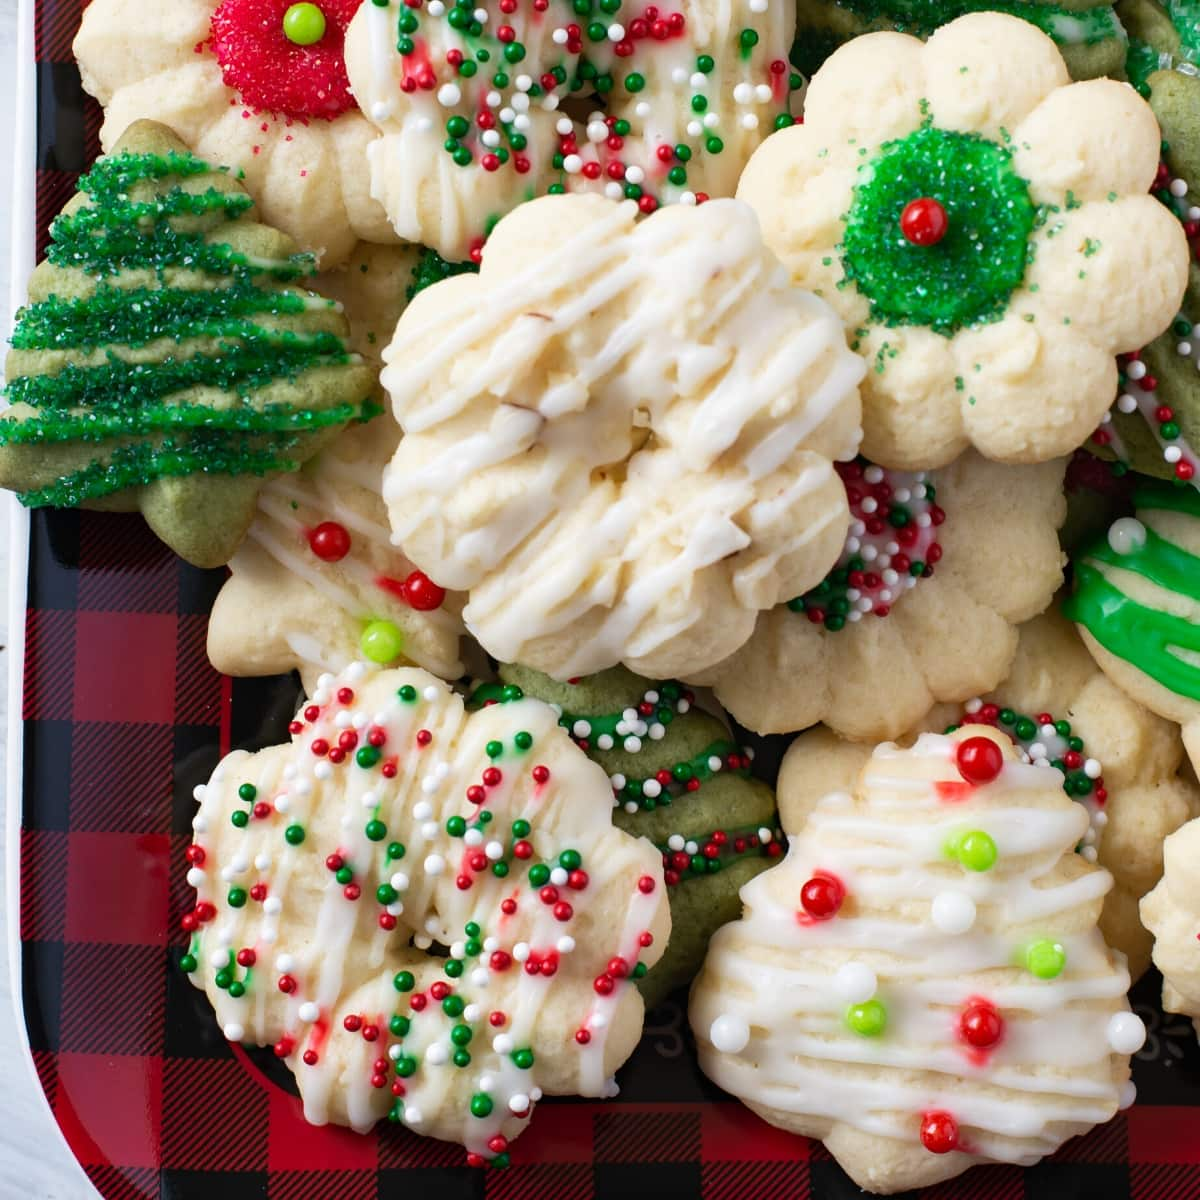 A holiday plate with a pile of the Almond Spritz Cookies.